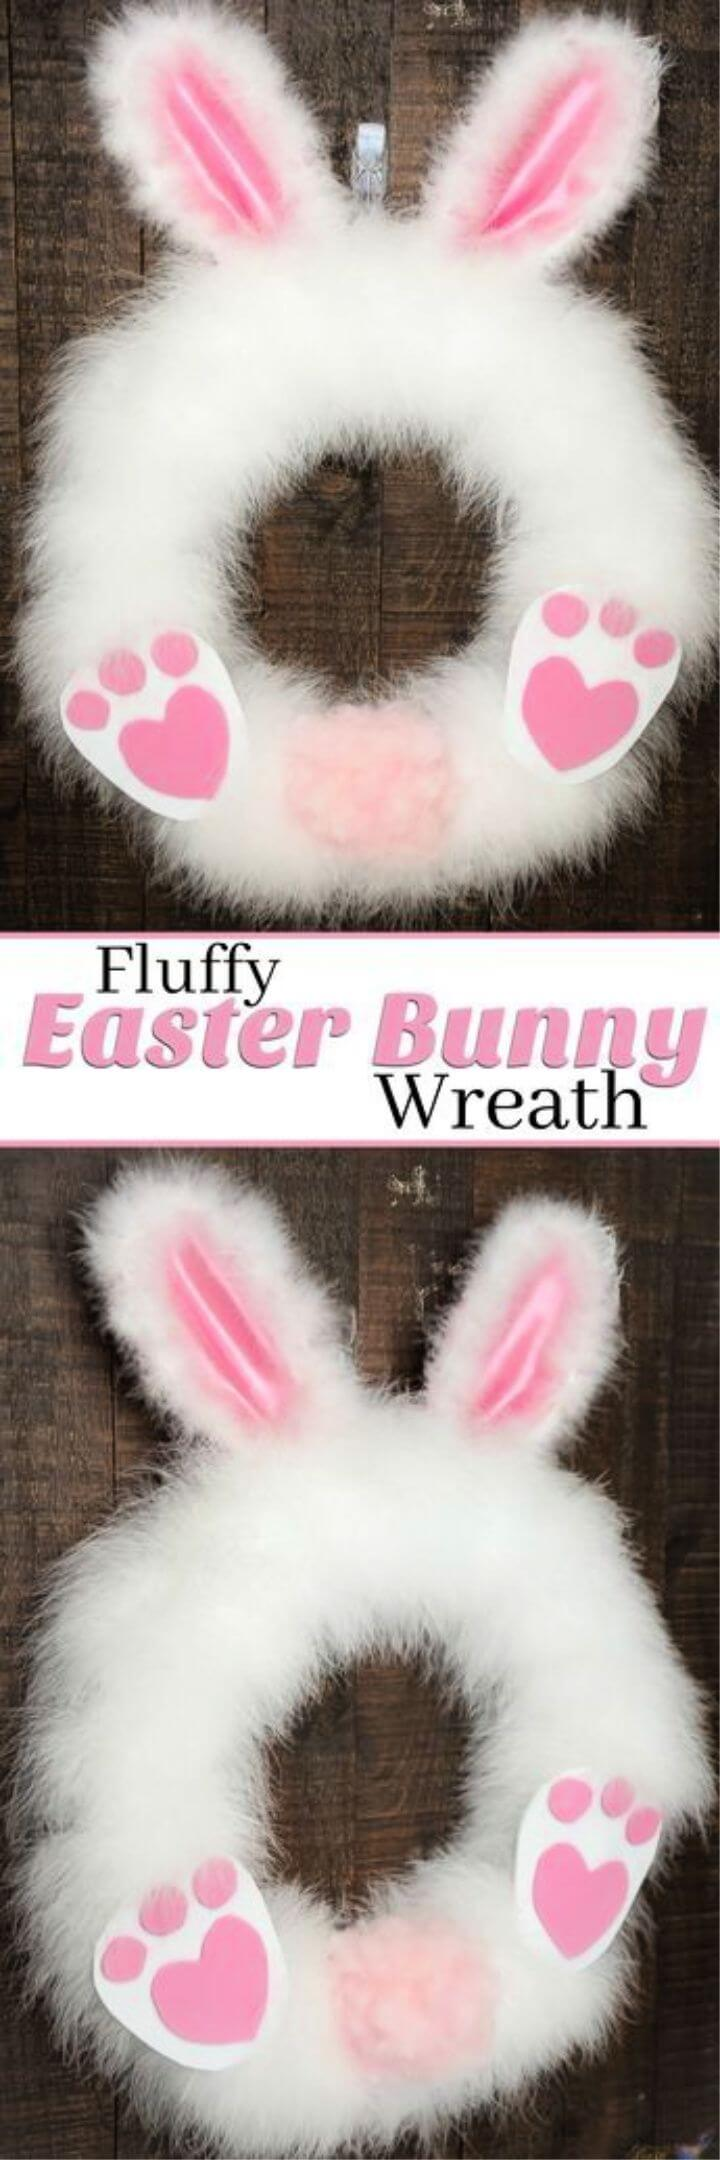 DIY Fluffy Easter Bunny Wreath in under 30 minutes